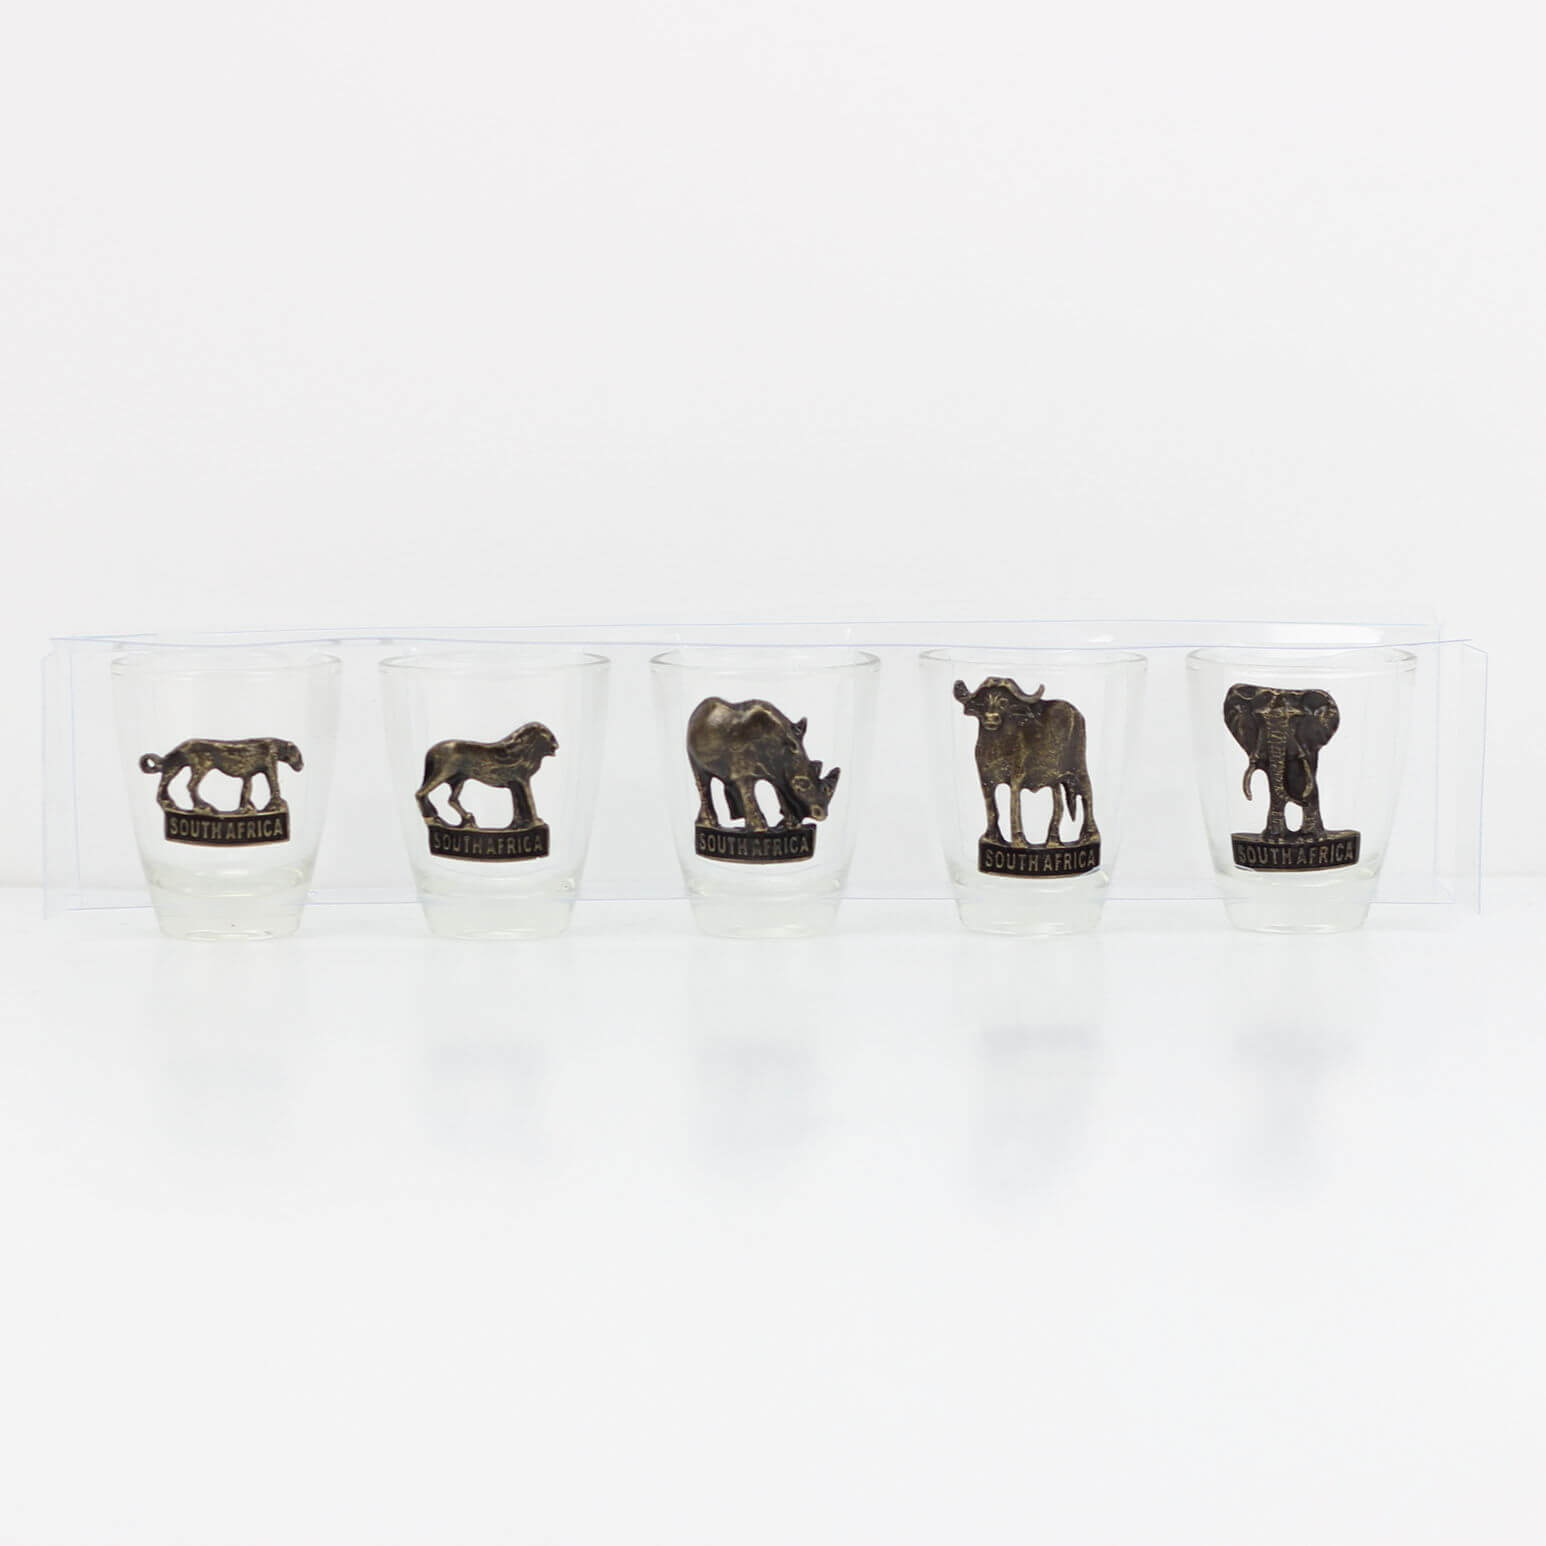 Shot Glasses - Big 5 - Set of 5